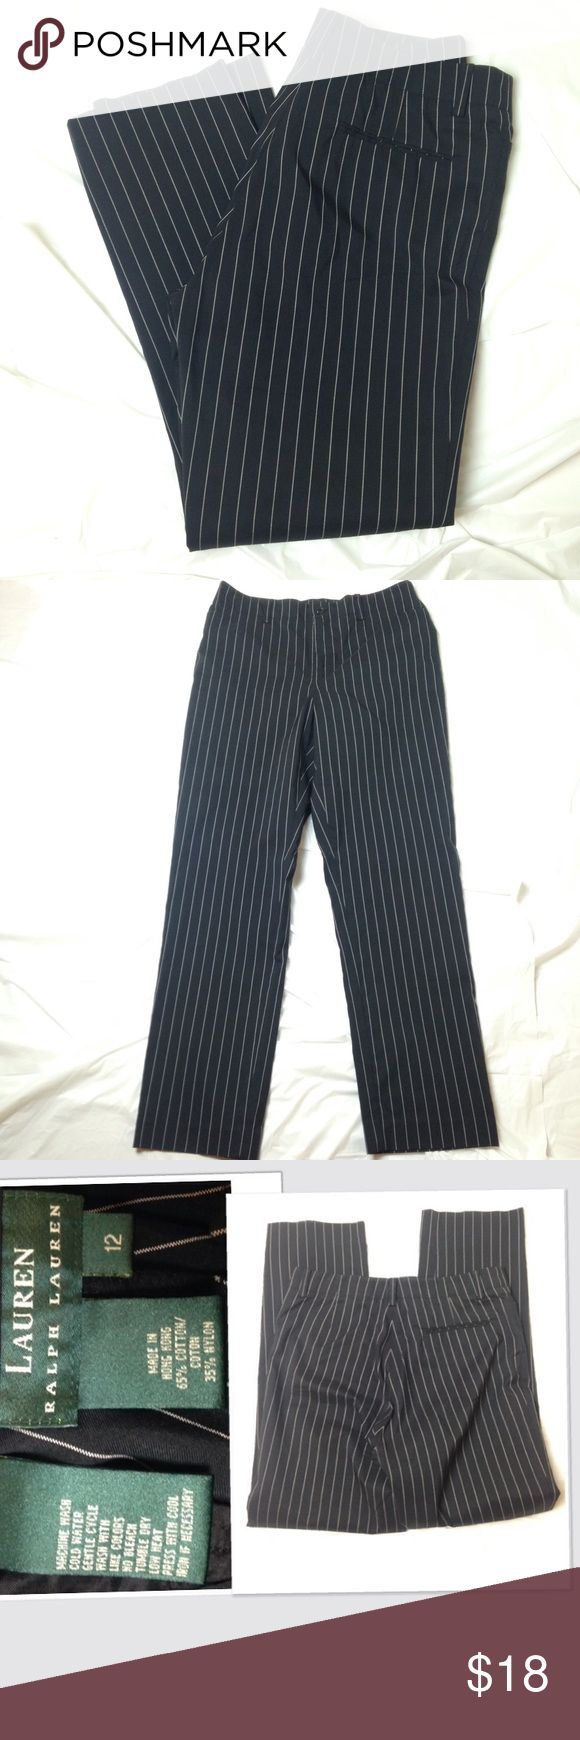 Ralp Lauren pinstripes pants sz 12 These pants measures almost 17 inches in the waist laying flat and is 31 inches long.  In great condition .  Pants are clean...I will ship fast. Lauren Ralph Lauren Pants Straight Leg